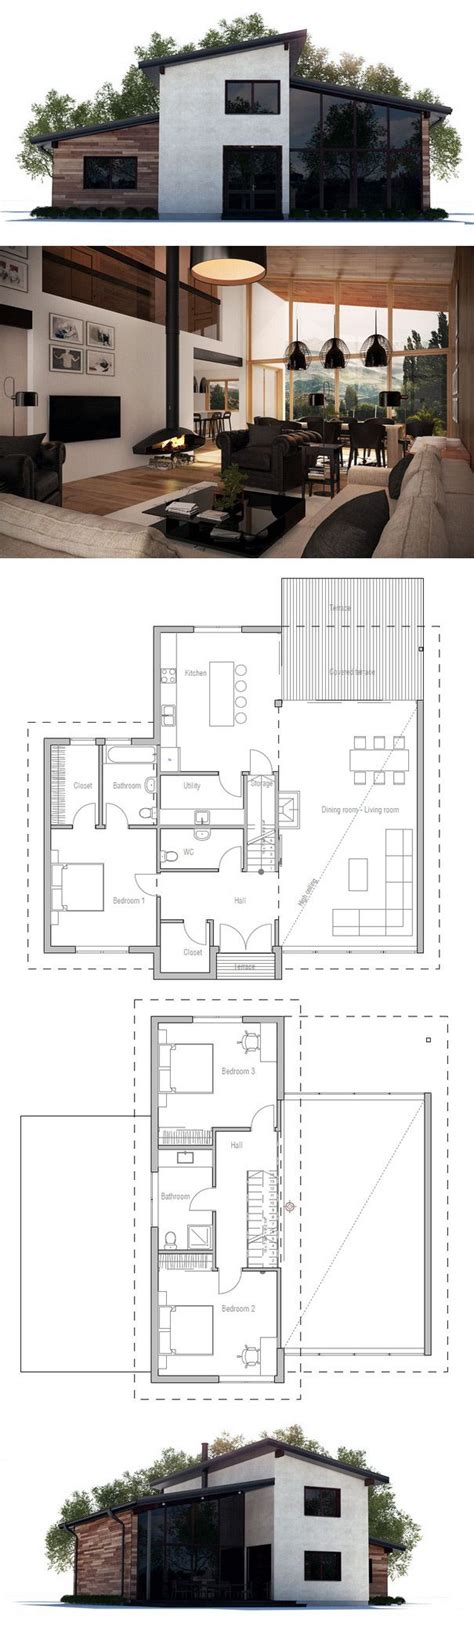 bahay kubo design and floor plan modern bahay kubo floor plan joy studio design gallery